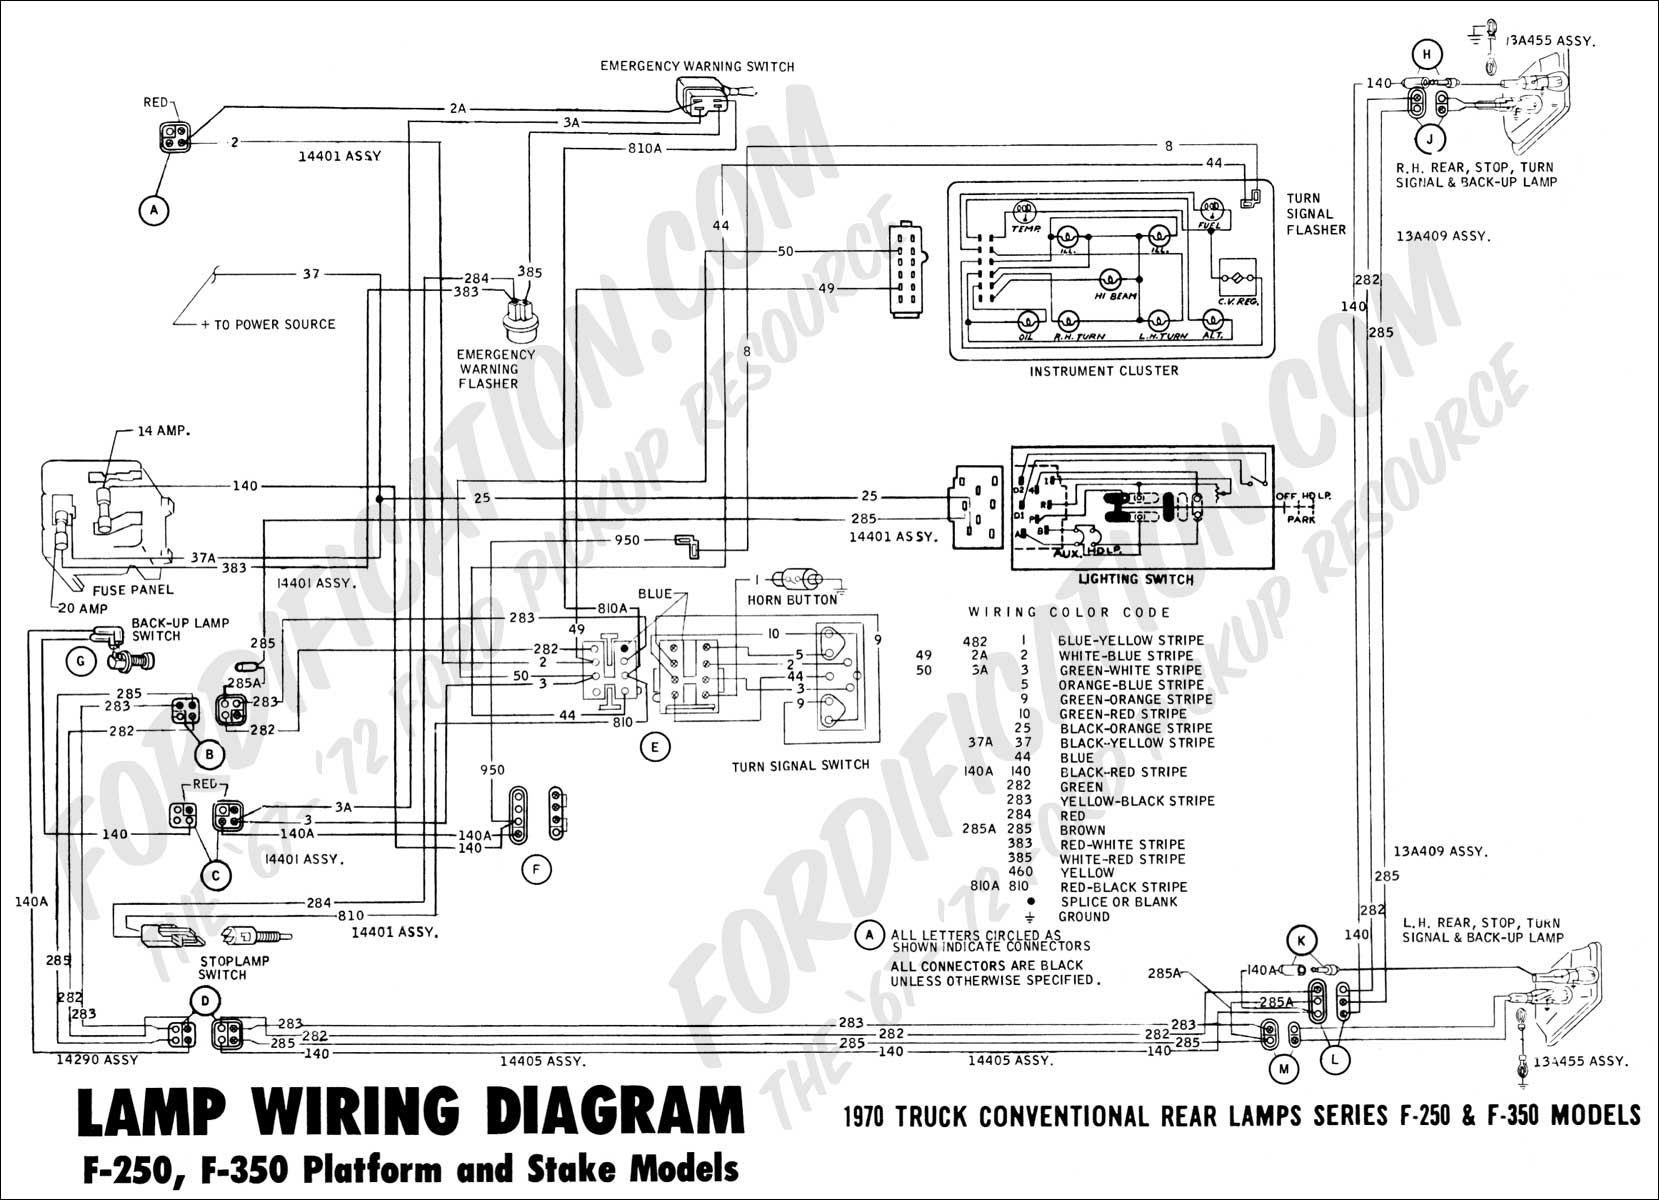 Ford F250 Wire Harness Wiring Diagram 1983 F 250 4x4 1972 Diagrams1972 Simple